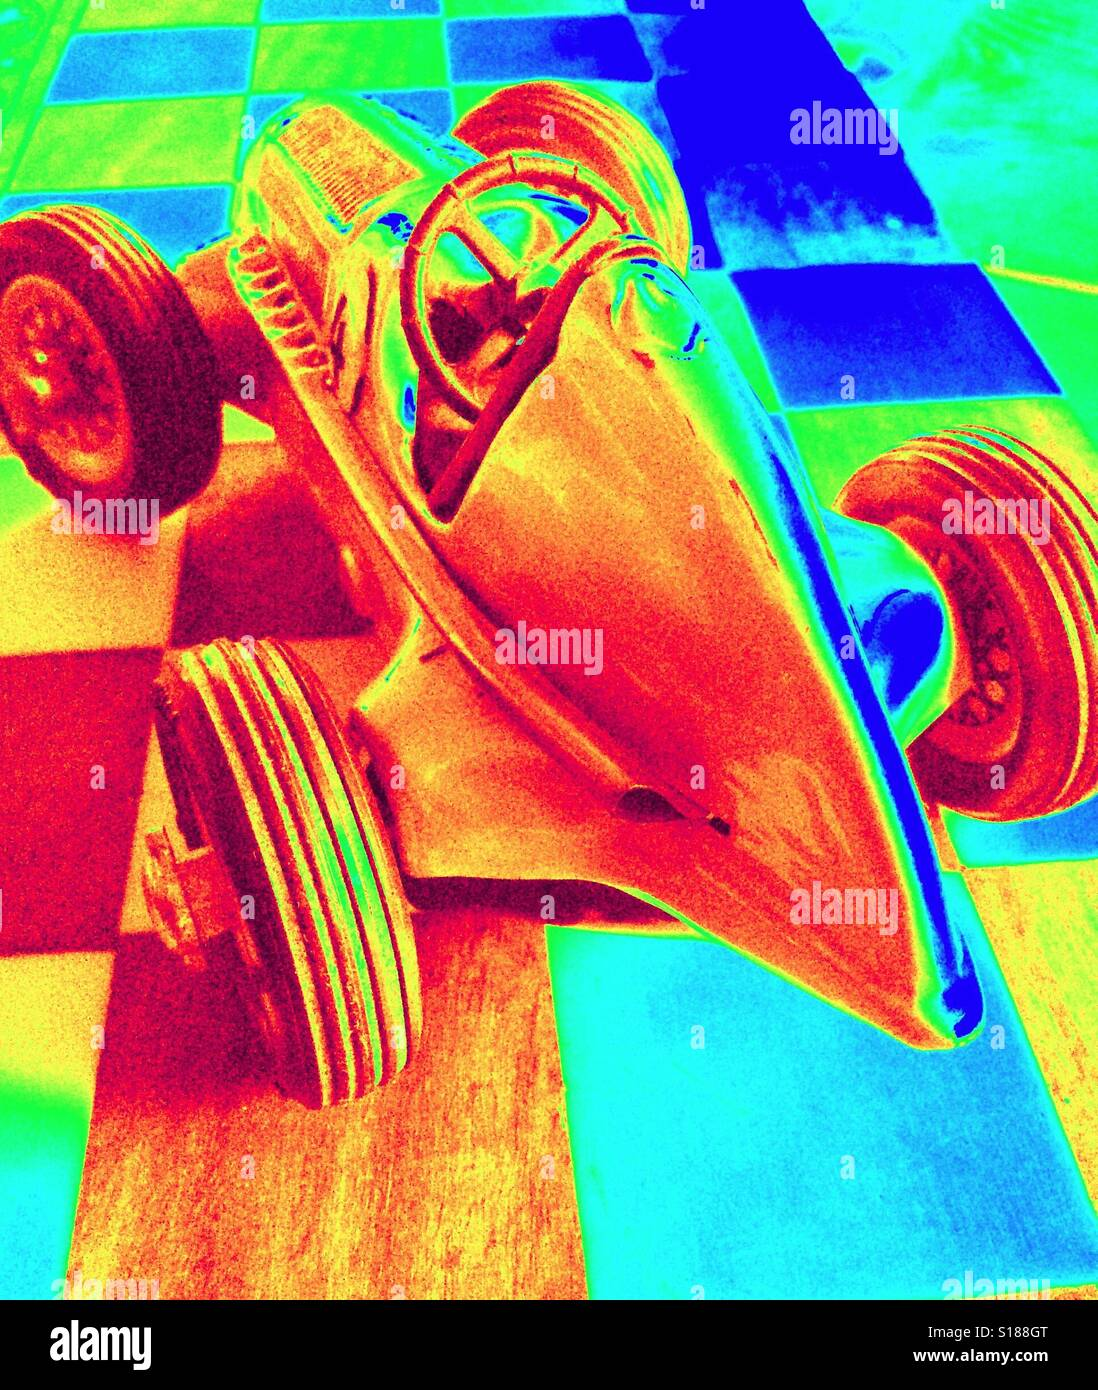 Infrared photo of historic racing car - Stock Image